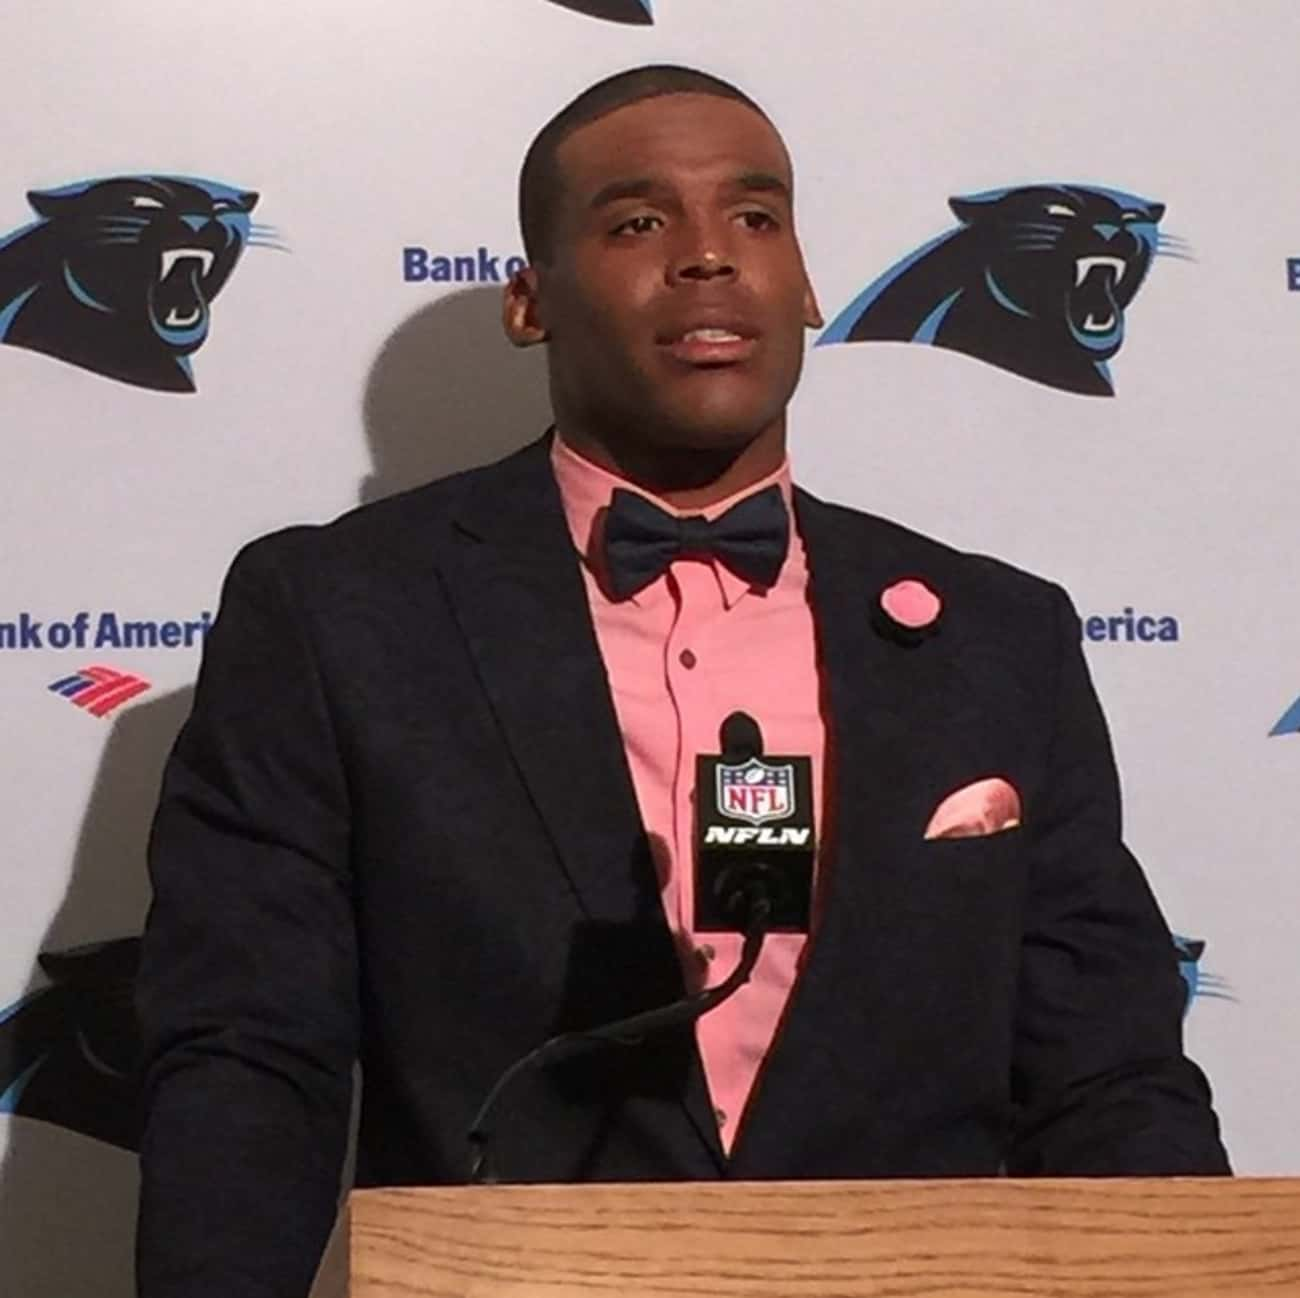 Hot Pink and Black Is a Fire C is listed (or ranked) 1 on the list Cam Newton's Most Over the Top Fashion Choices